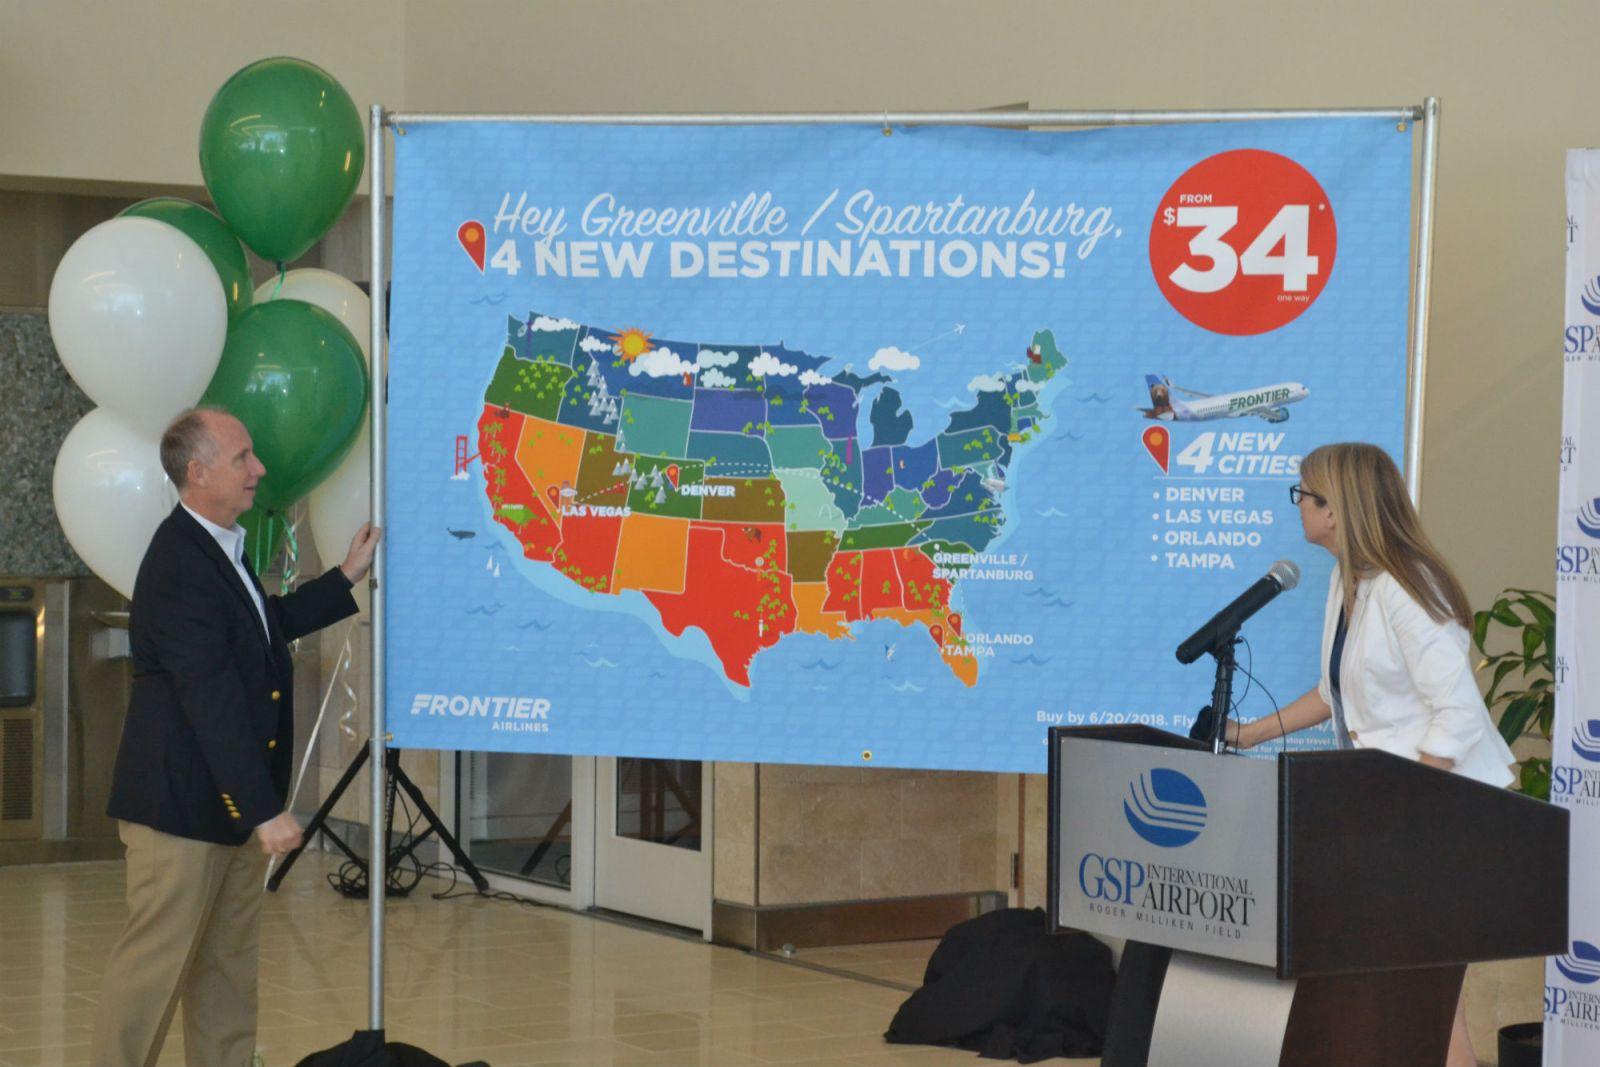 Dave Edwards, president and CEO of GSP, and Tyri Squyres, vice president of marketing for Frontier, announce the new nonstop flights Frontier will offer. (Photo/Ross Norton)